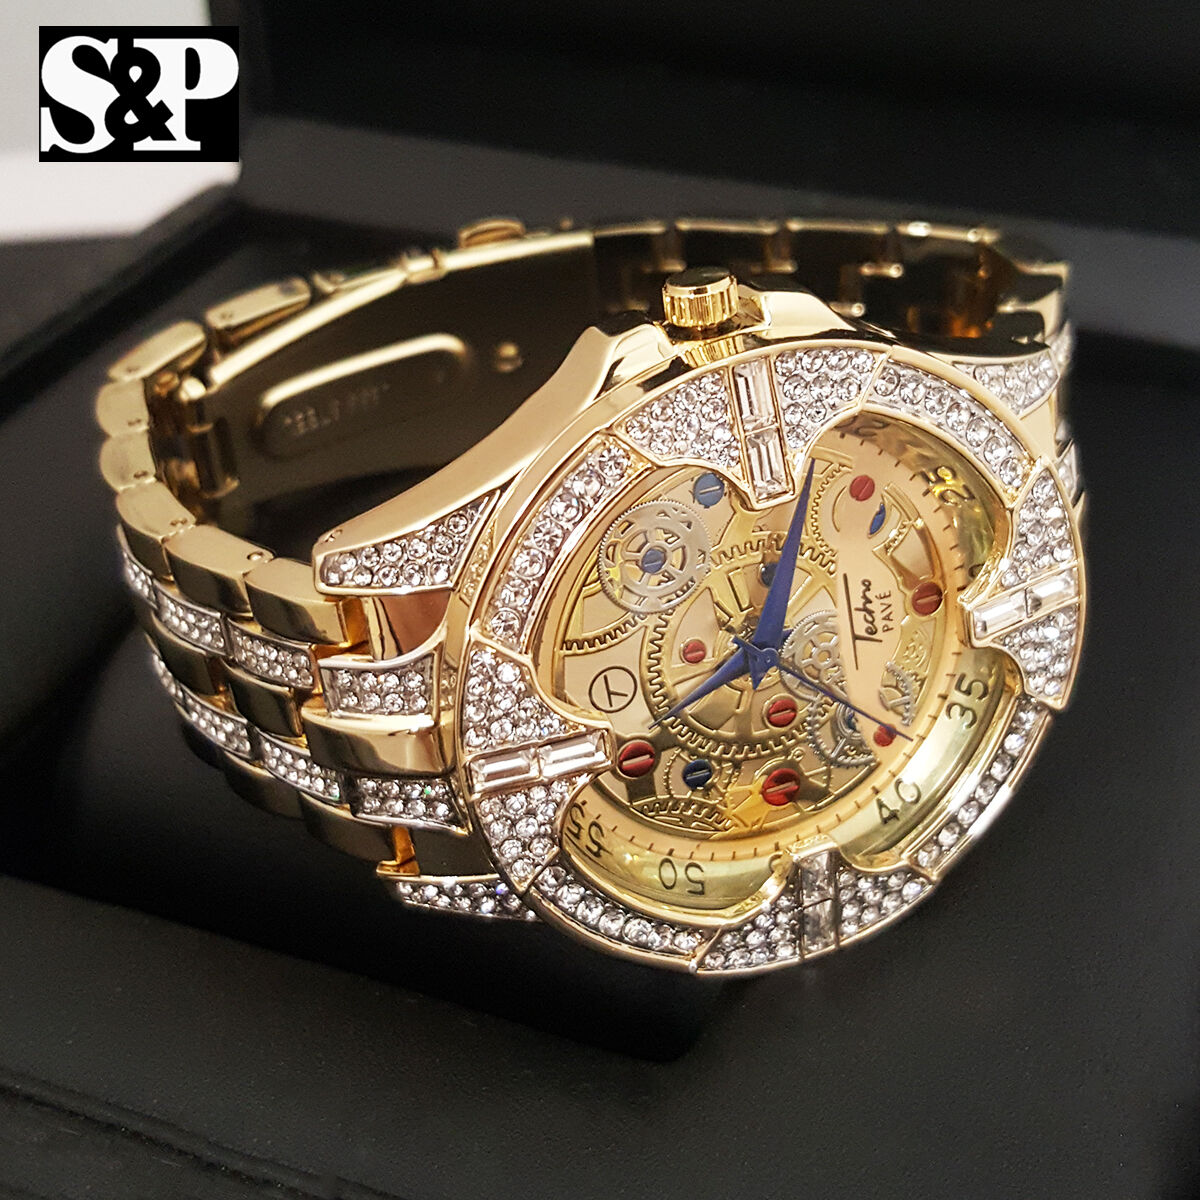 $25.64 - Men Stainless Steel Full Iced Out Bling Hip Hop Lab Diamonds Luxury Dress Watch